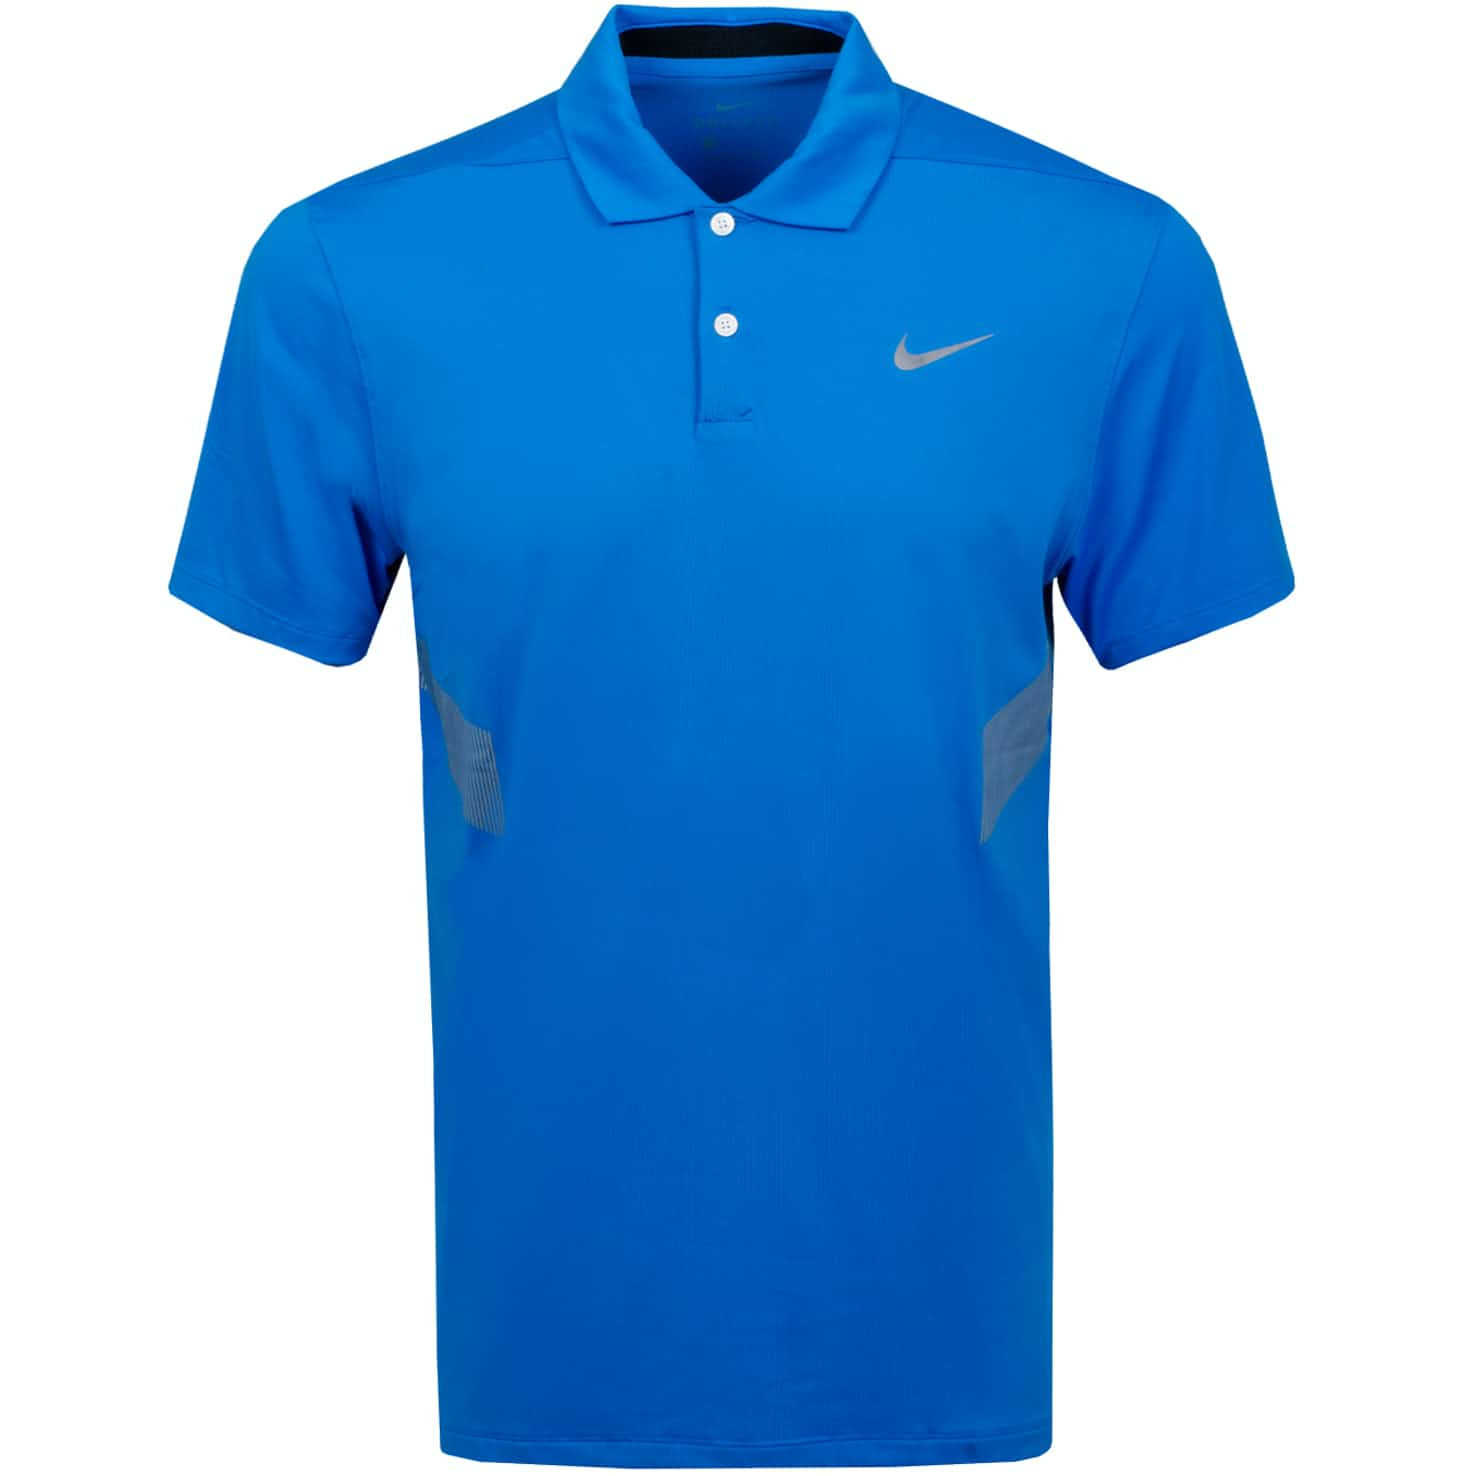 Dry Vapor Reflect Polo Photo Blue/Silver - AW19